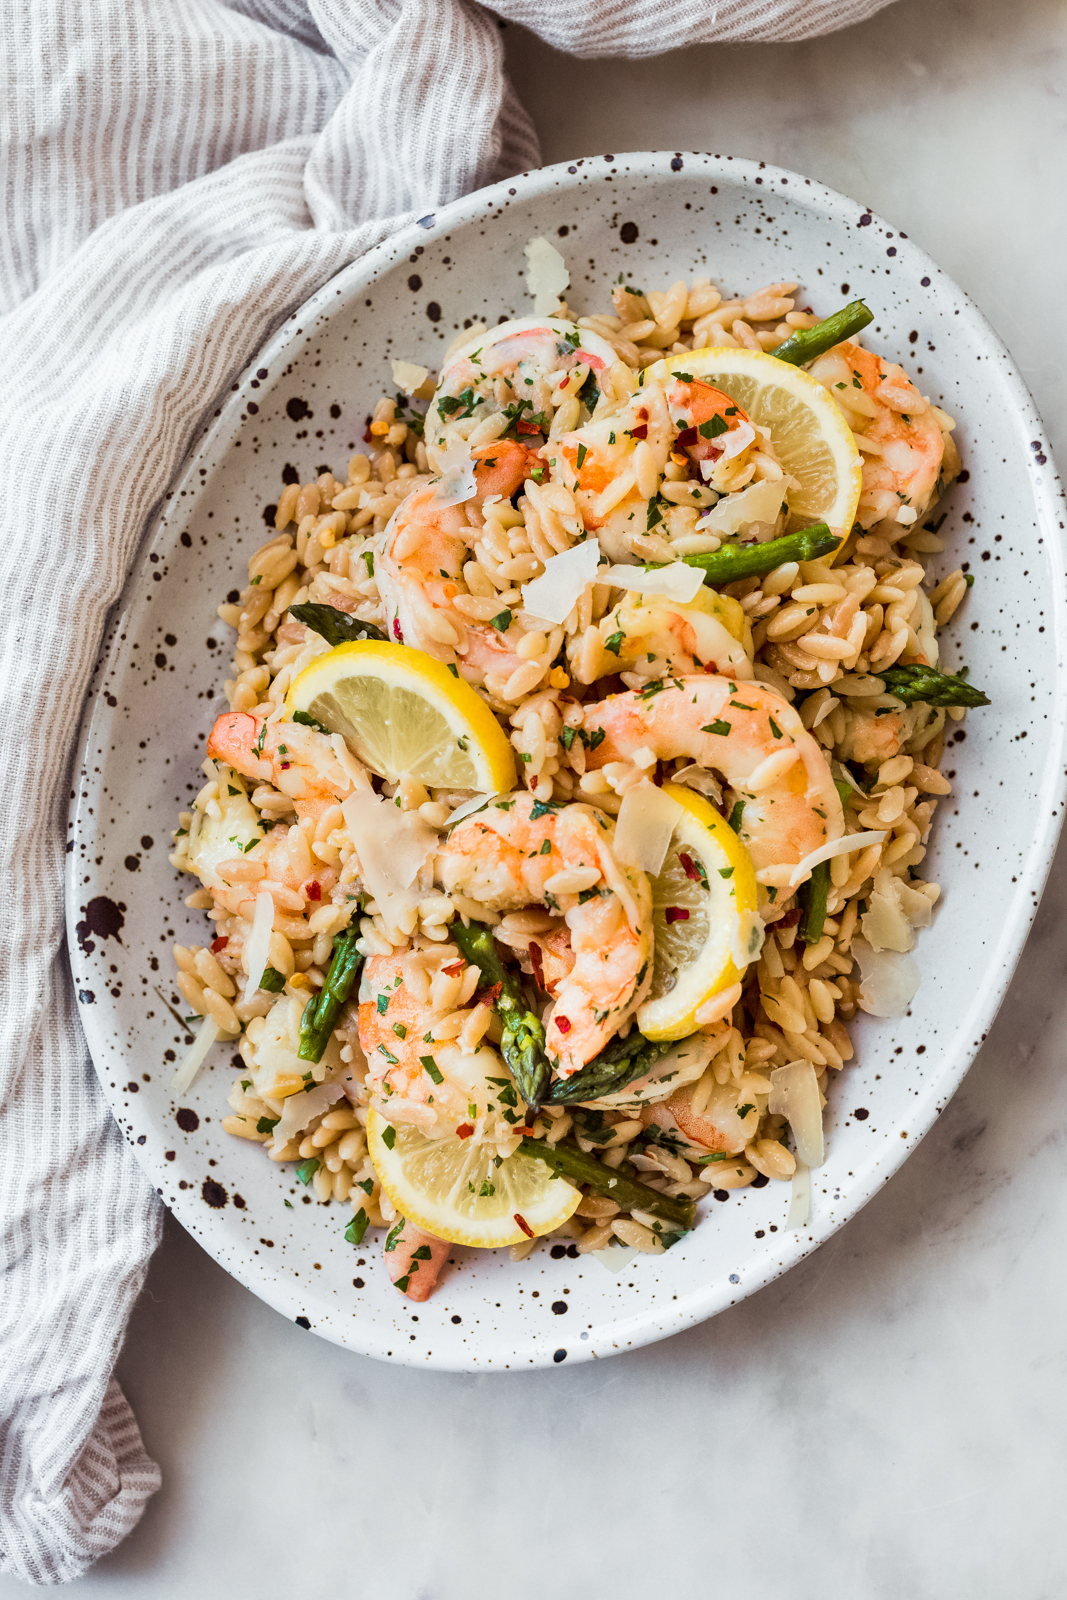 oval speckled dish with prepared orzo scampi with fresh lemon slices